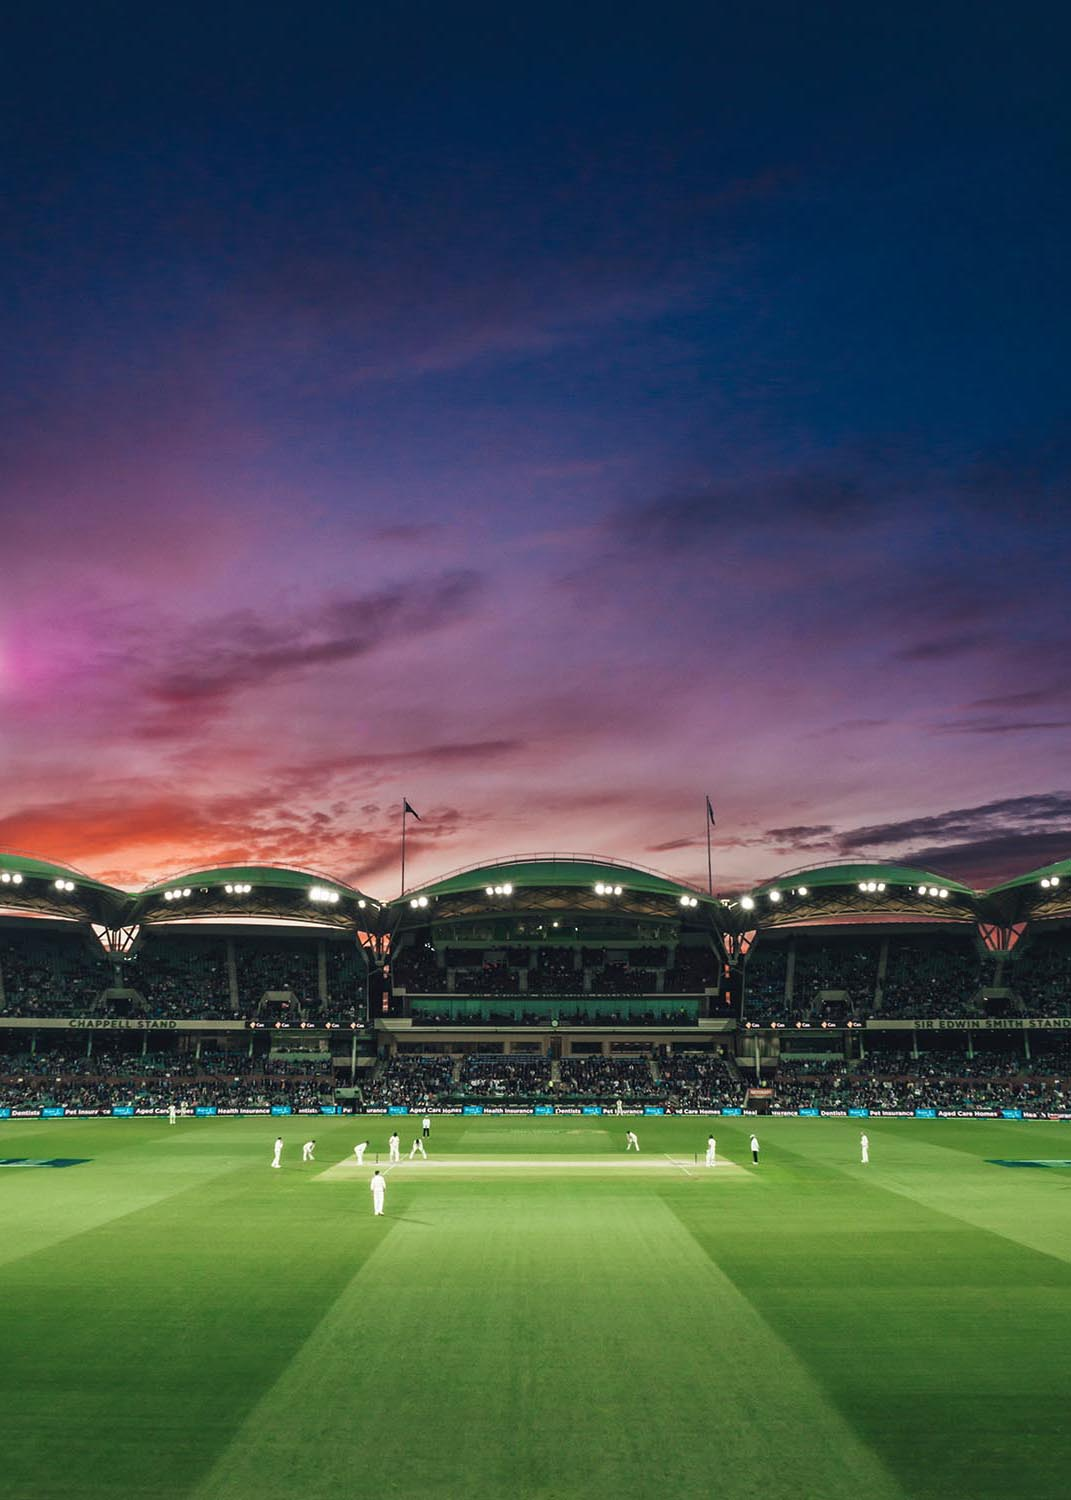 Cricket match. Image by Marcus Wallis.